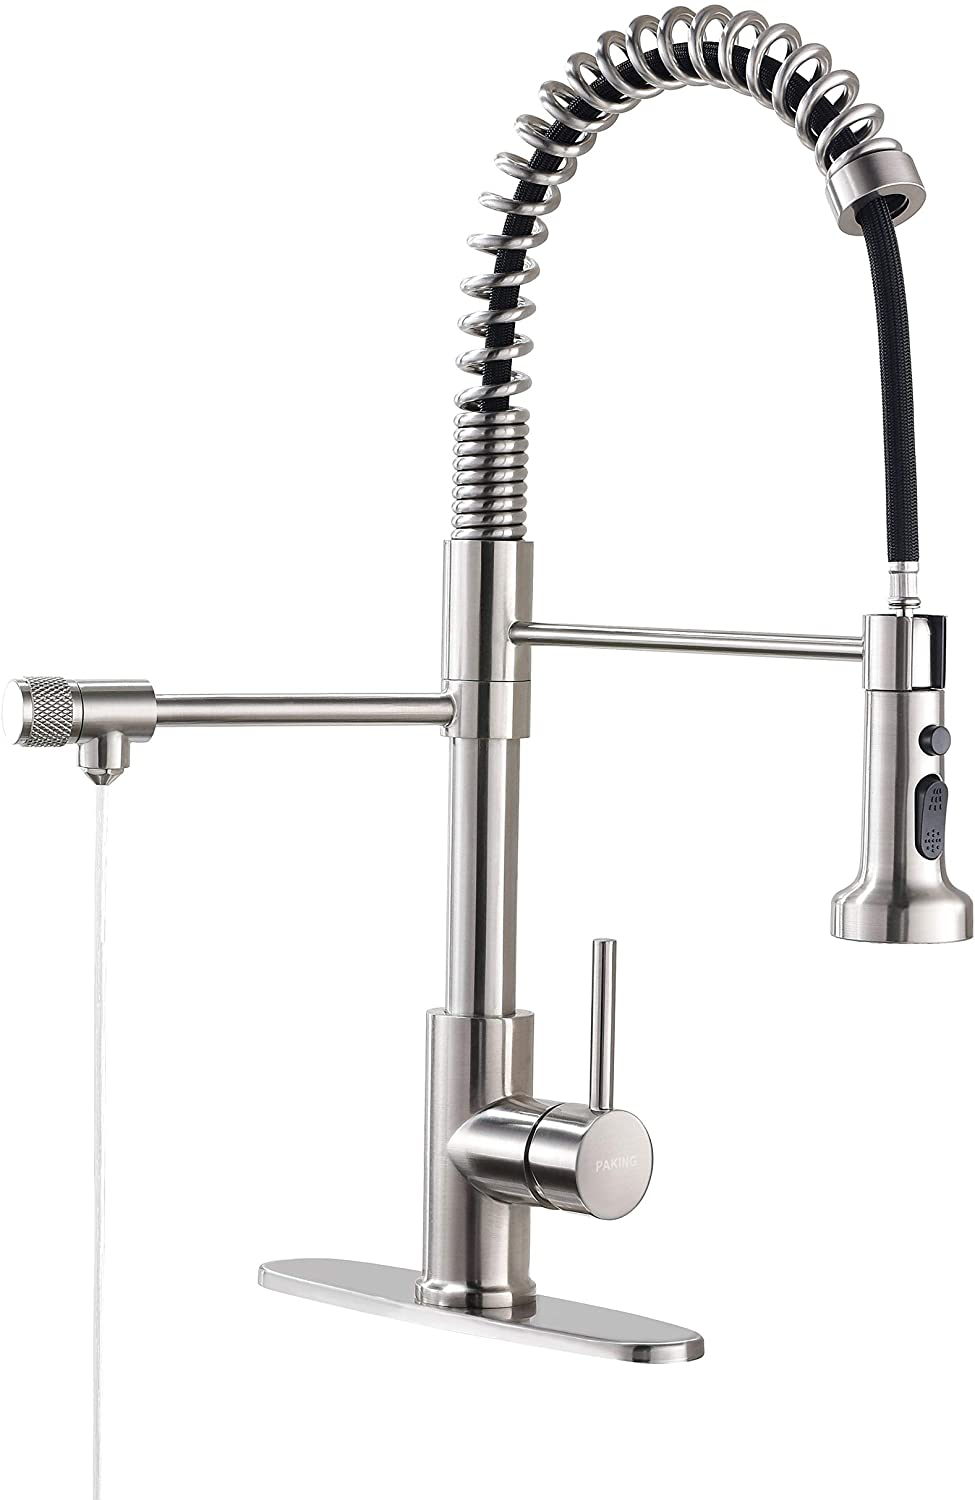 Drinking Water Faucet, PAKING PB1017 Kitchen Faucet, Kitchen Sink Faucet, Water Filtration Faucet, Sink Faucet, Pull-down Kitchen Faucets, Bar Water Filter Faucet, Brushed Nickel, Stainless Steel